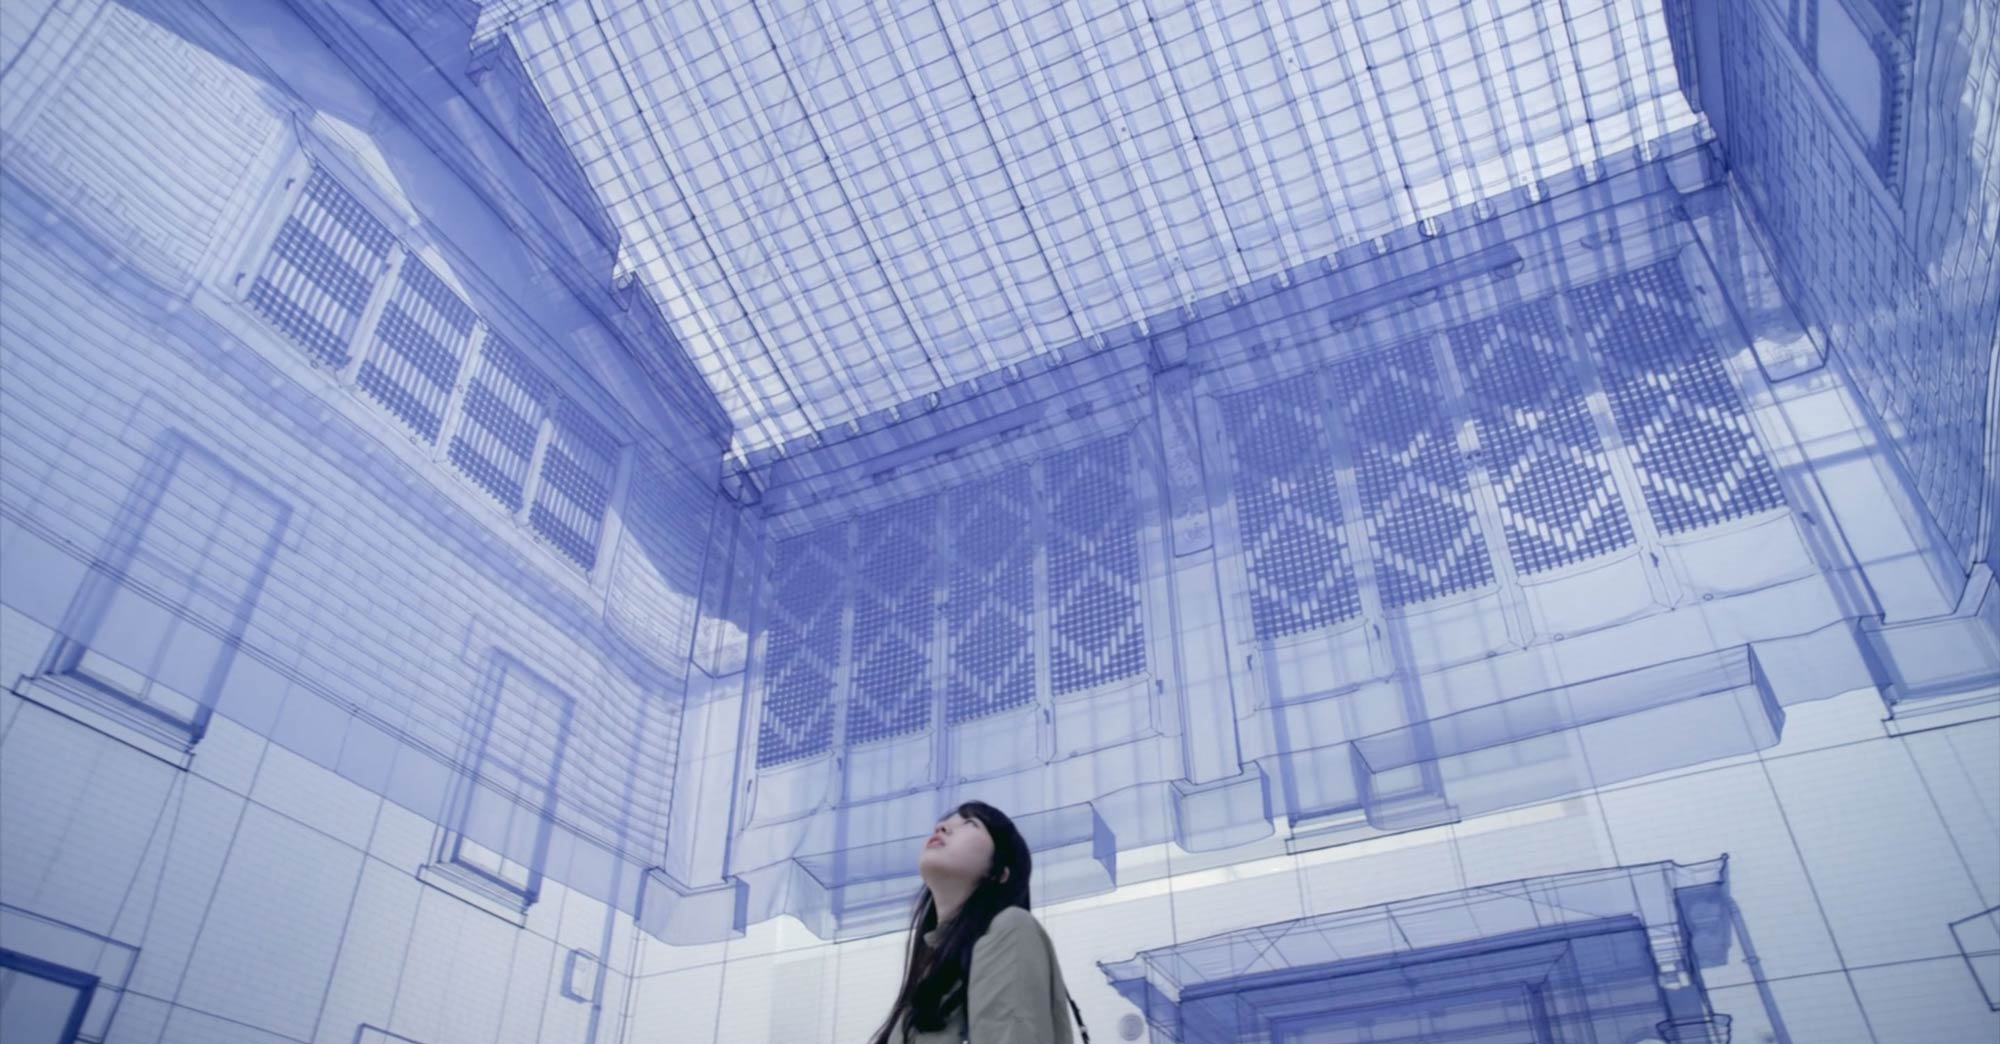 do ho suh sewn fabric sculptures inside lifesize blue house